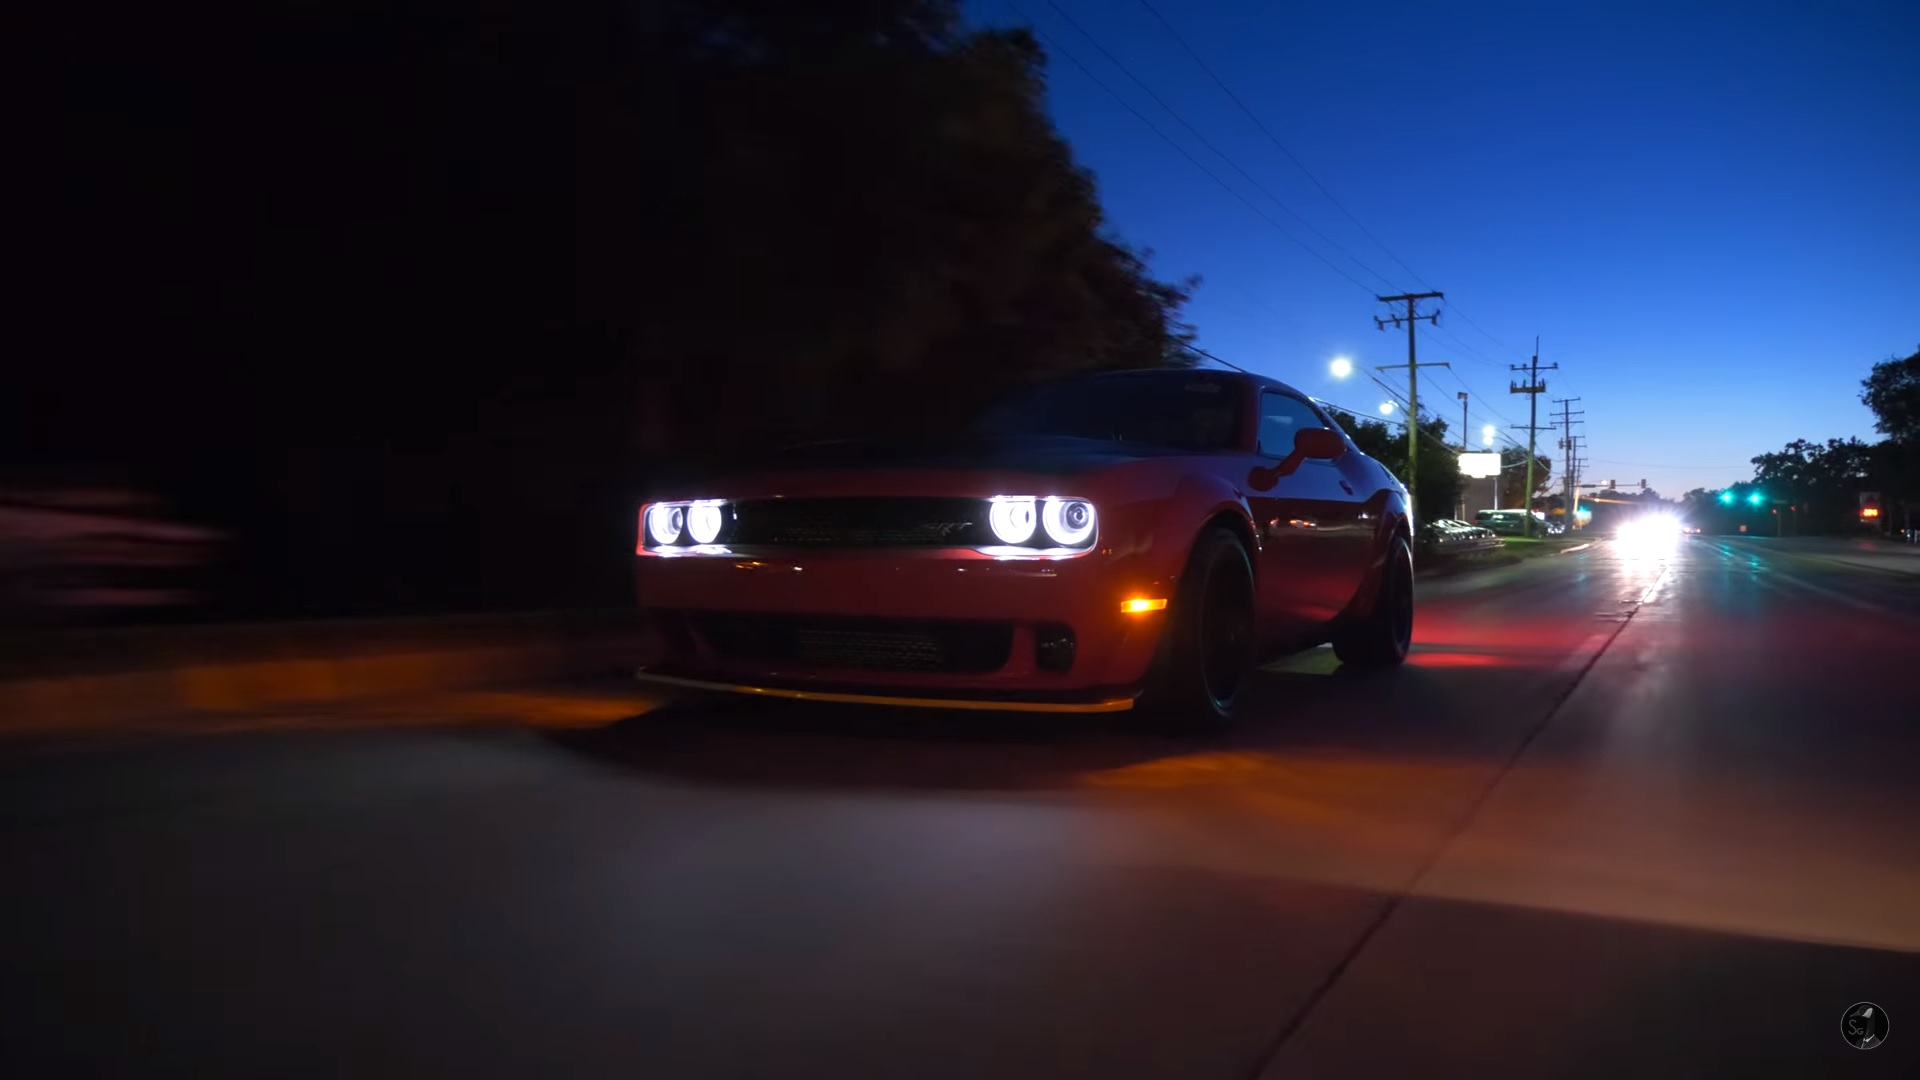 Watch This Amazing Review Of The 2018 Dodge Challenger Srt Demon Sprinter Fuel Filter Video Top Speed